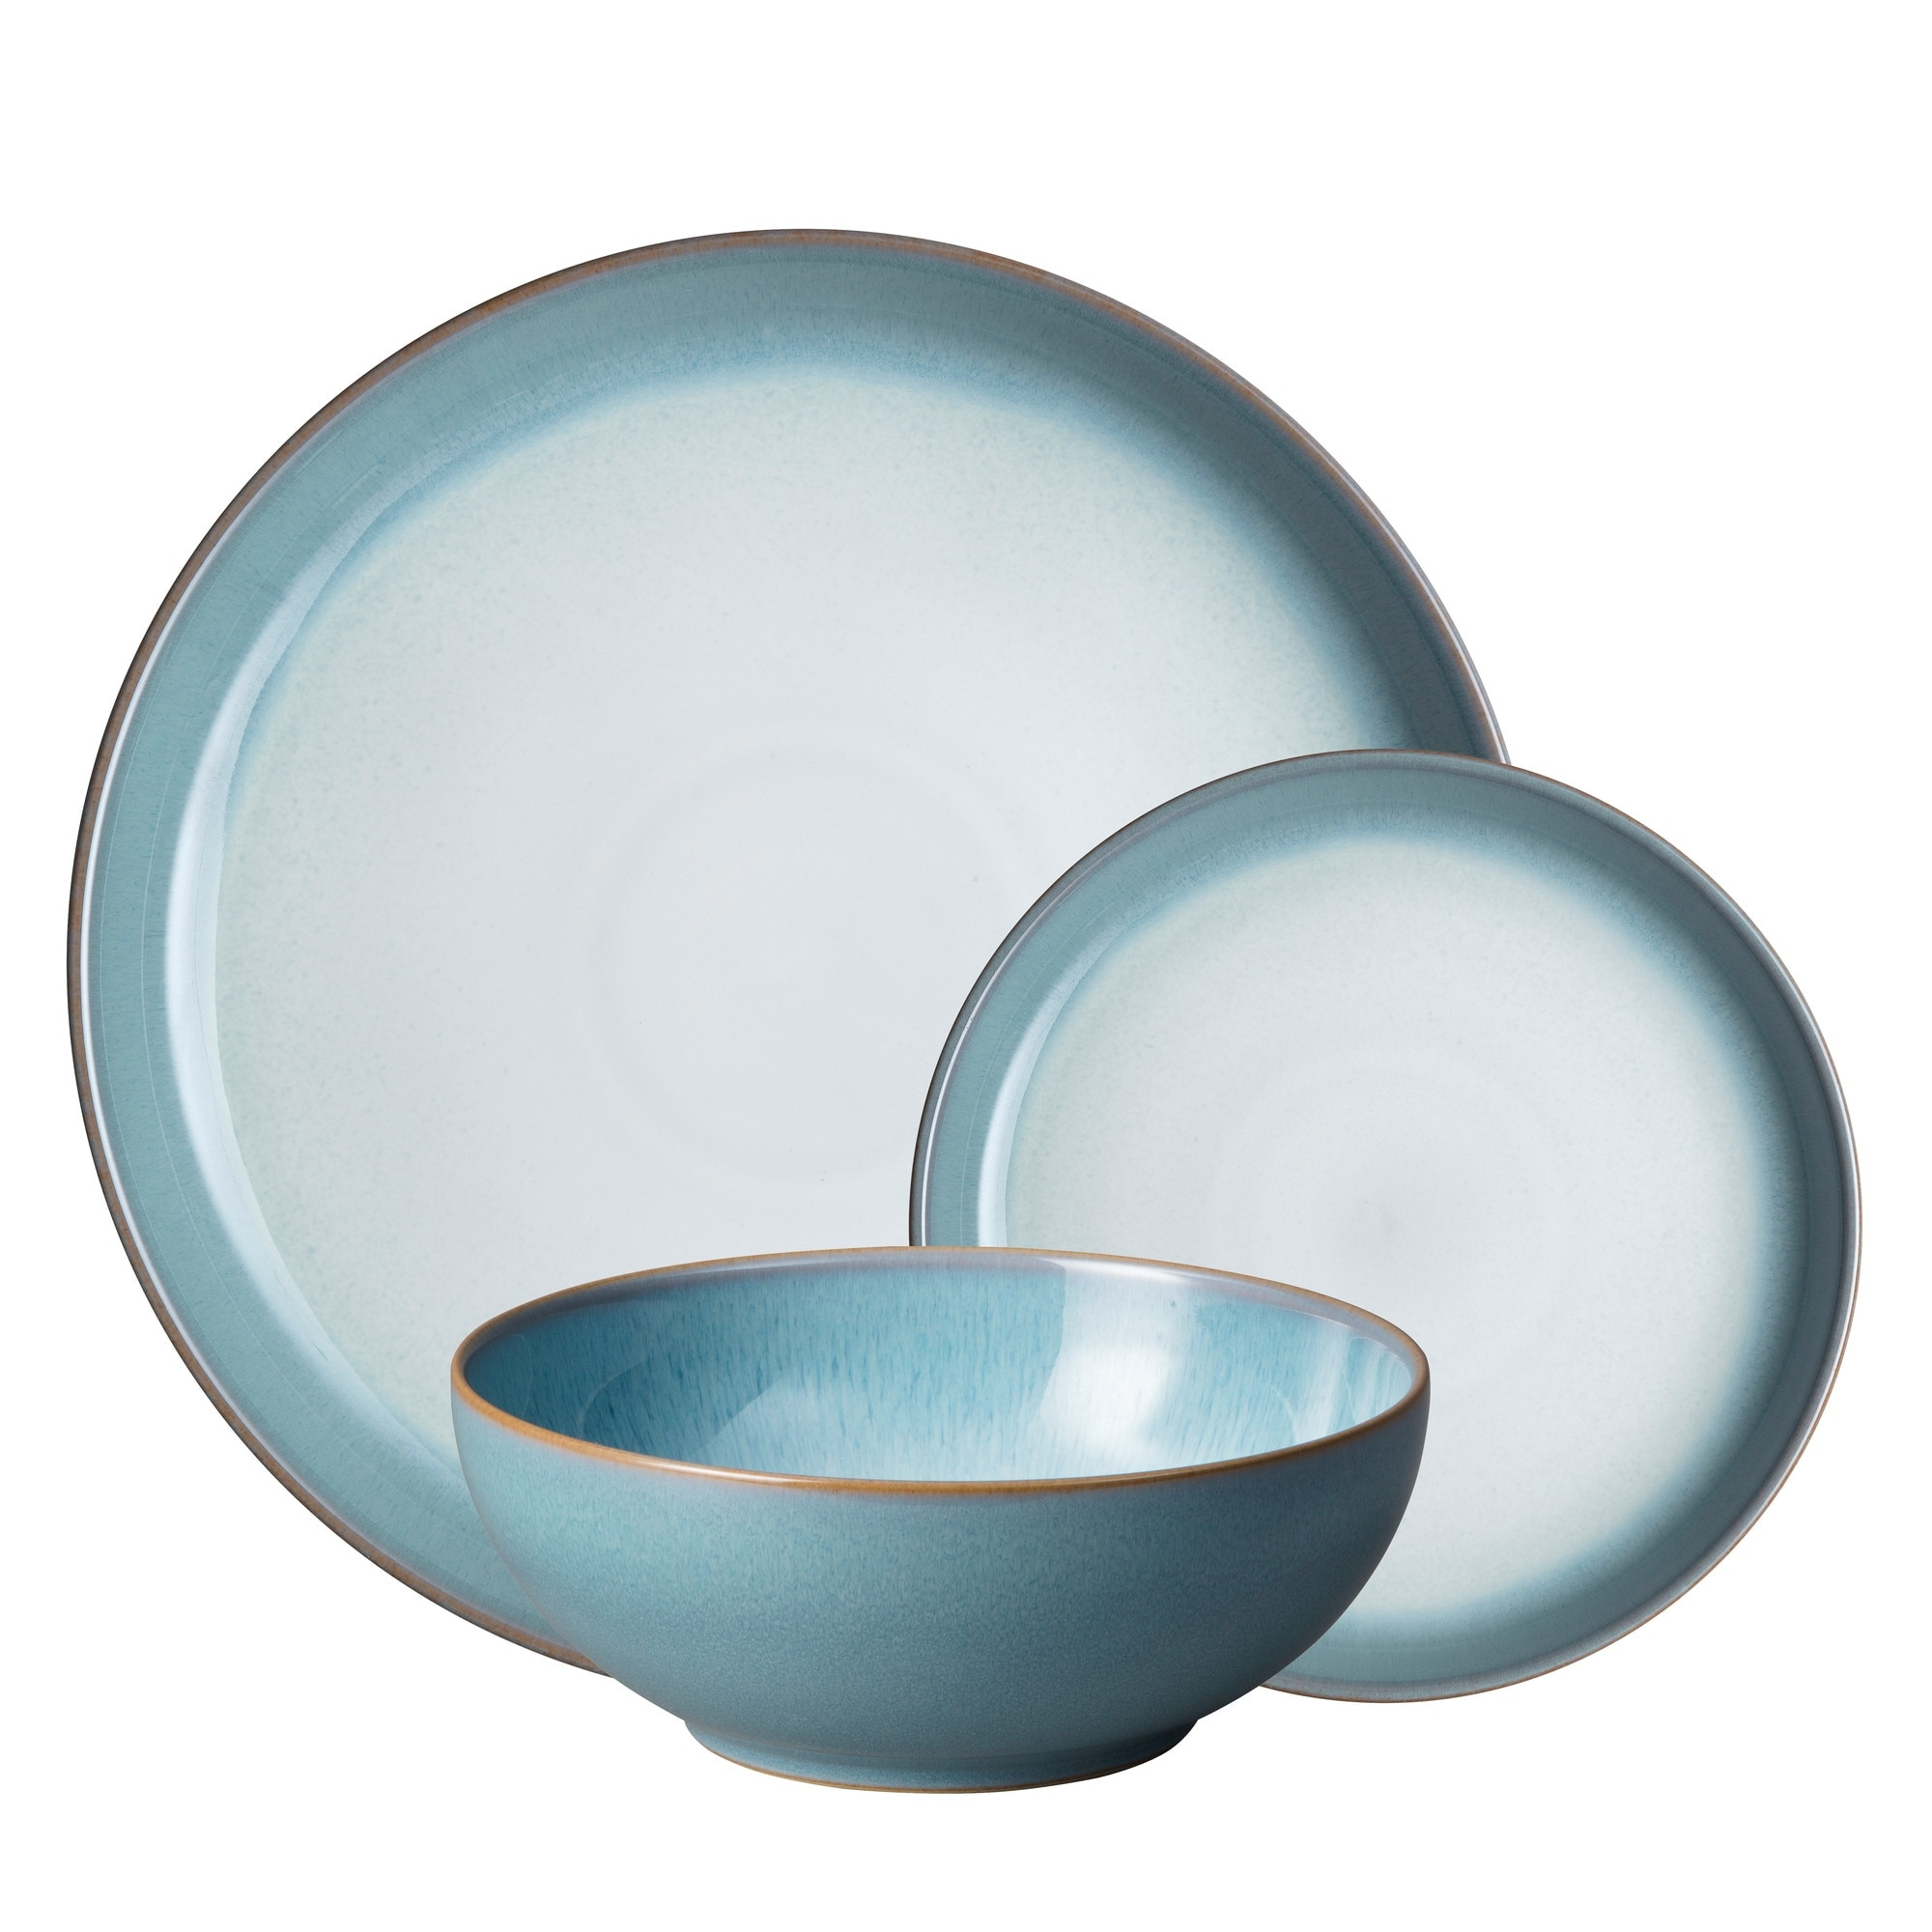 Compare prices for Azure Haze 12 Piece Coupe Tableware Set